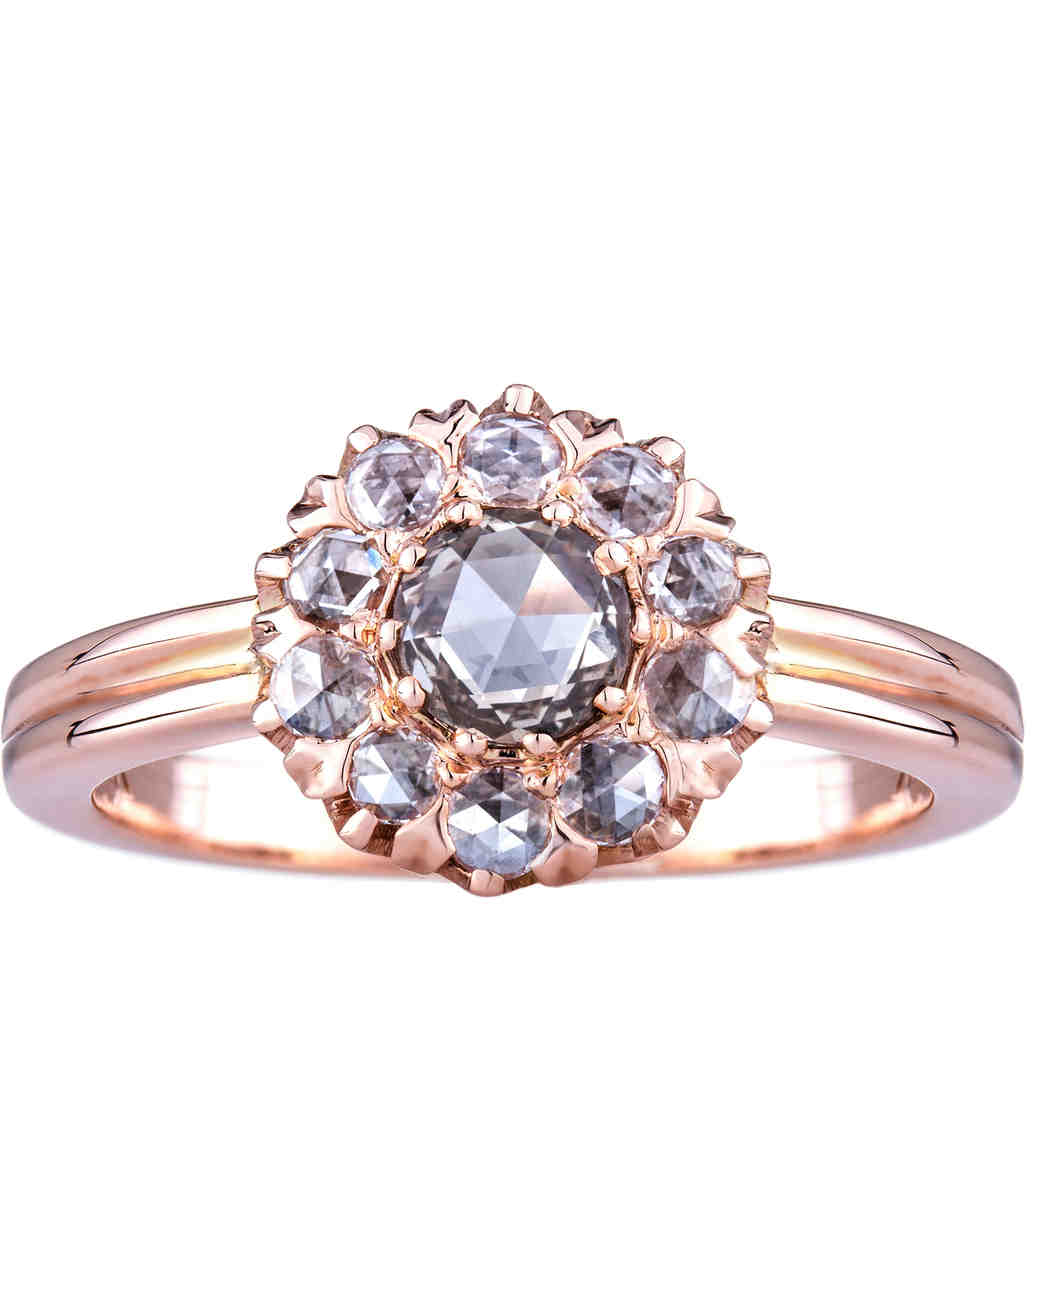 jewelers nyc stores engagement wedding gold ring london online rings of size rose rated houston top full designers for